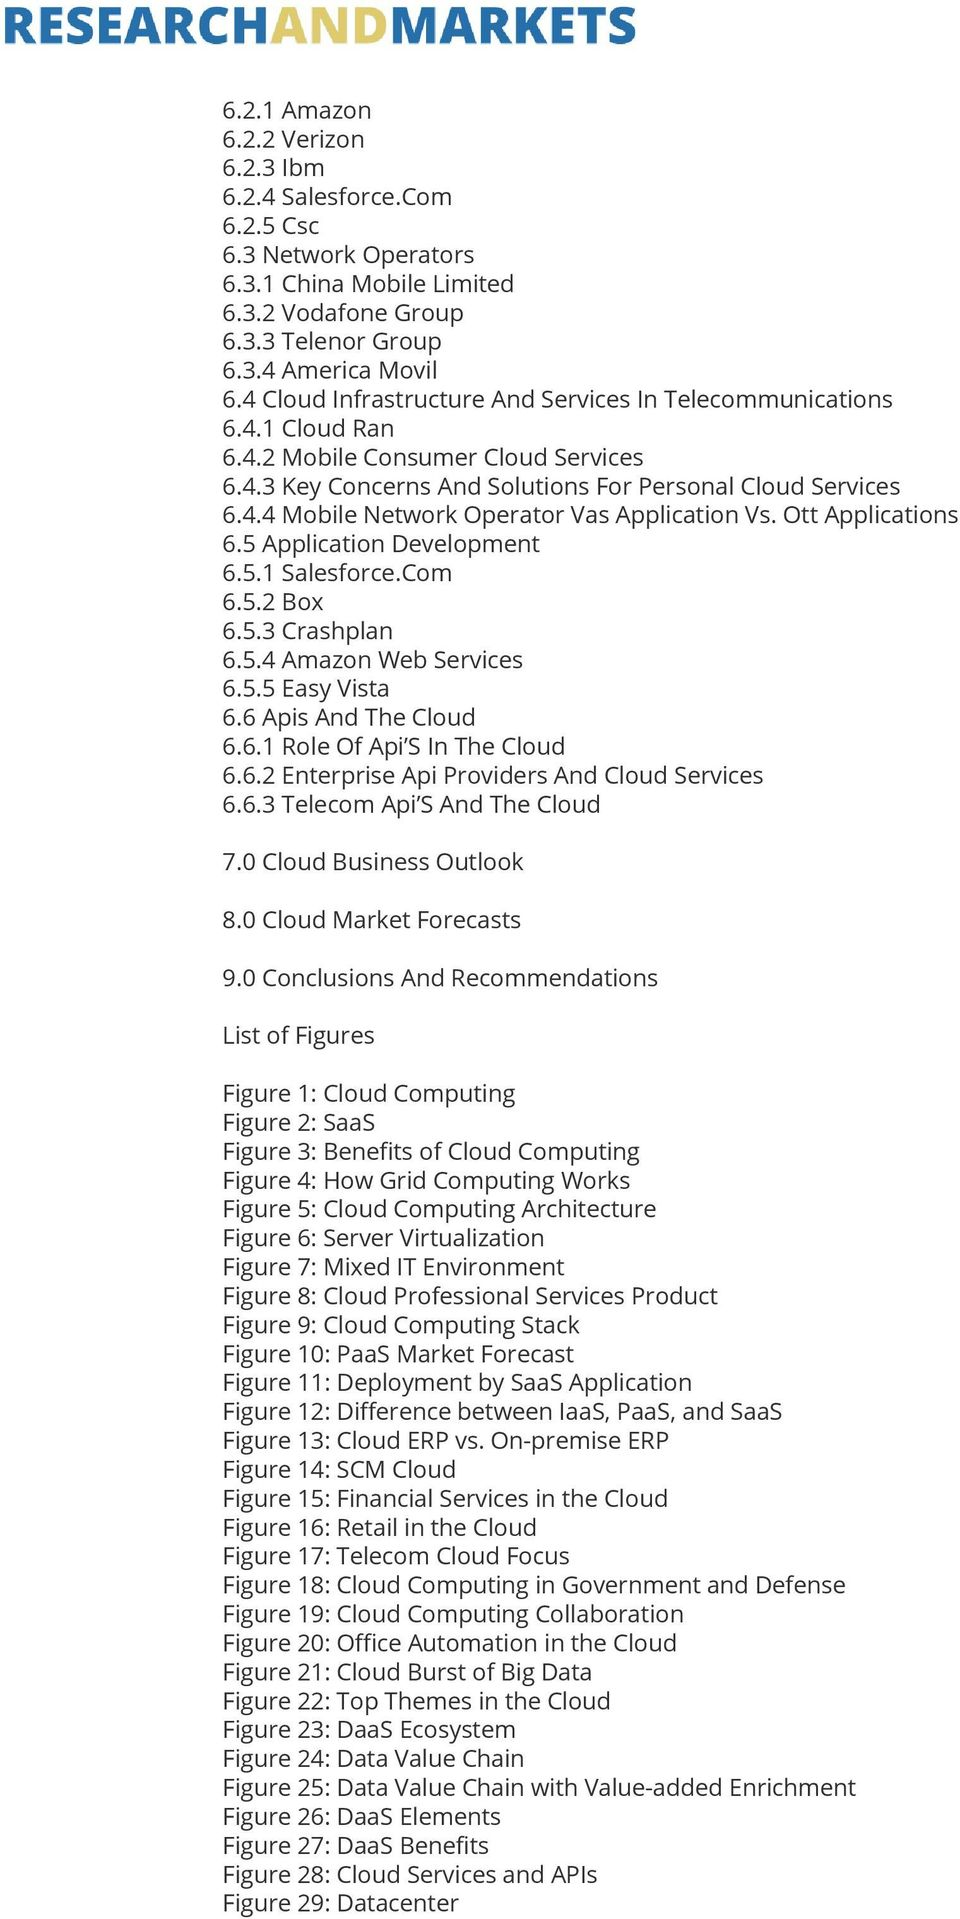 Ott Applications 6.5 Application Development 6.5.1 Salesforce.Com 6.5.2 Box 6.5.3 Crashplan 6.5.4 Amazon Web Services 6.5.5 Easy Vista 6.6 Apis And The Cloud 6.6.1 Role Of Api S In The Cloud 6.6.2 Enterprise Api Providers And Cloud Services 6.